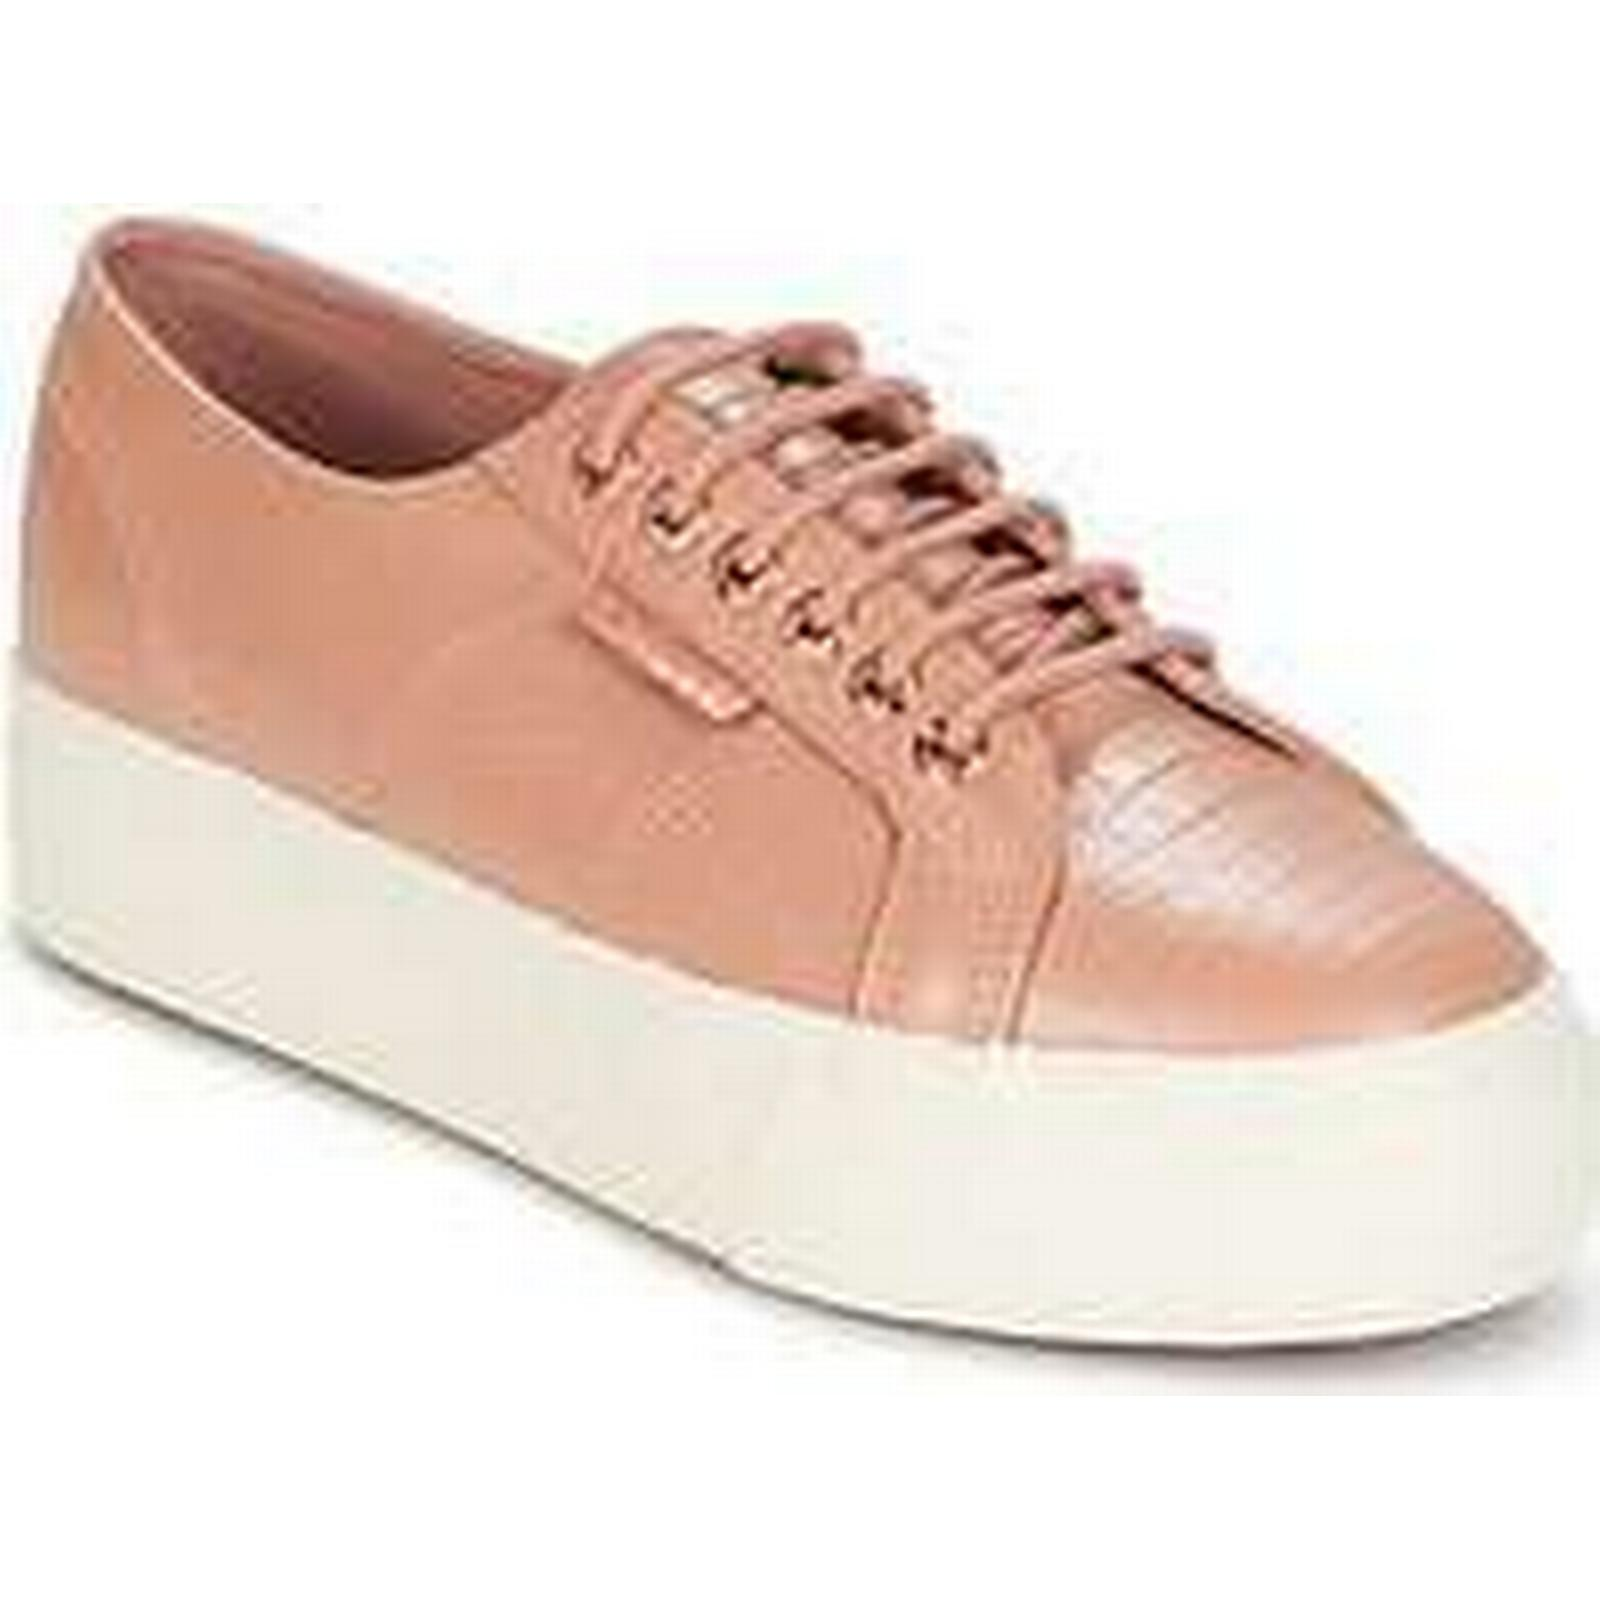 Spartoo.co.uk Superga 2790 F GL W (Trainers) EMB COCCO women's Shoes (Trainers) W in Pink f9b2b6